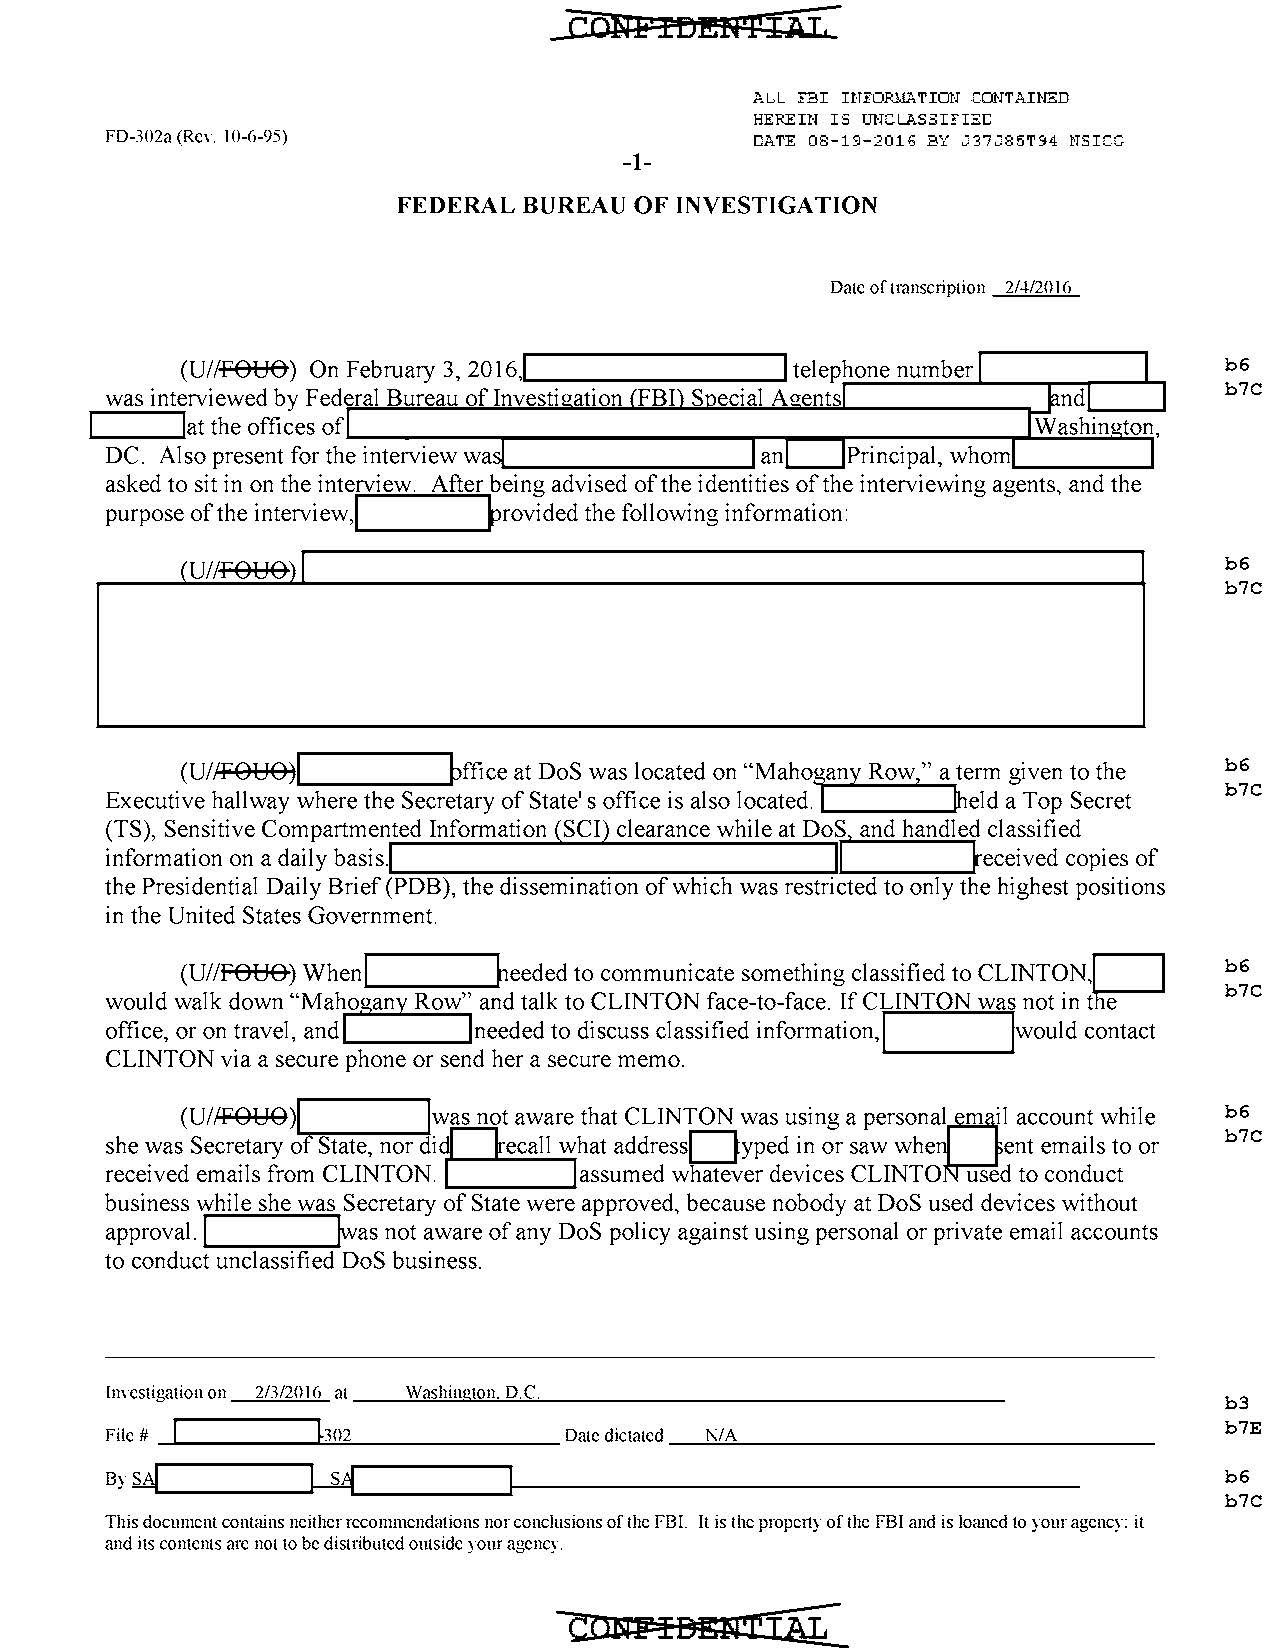 FBI releases Hillary Clinton email report